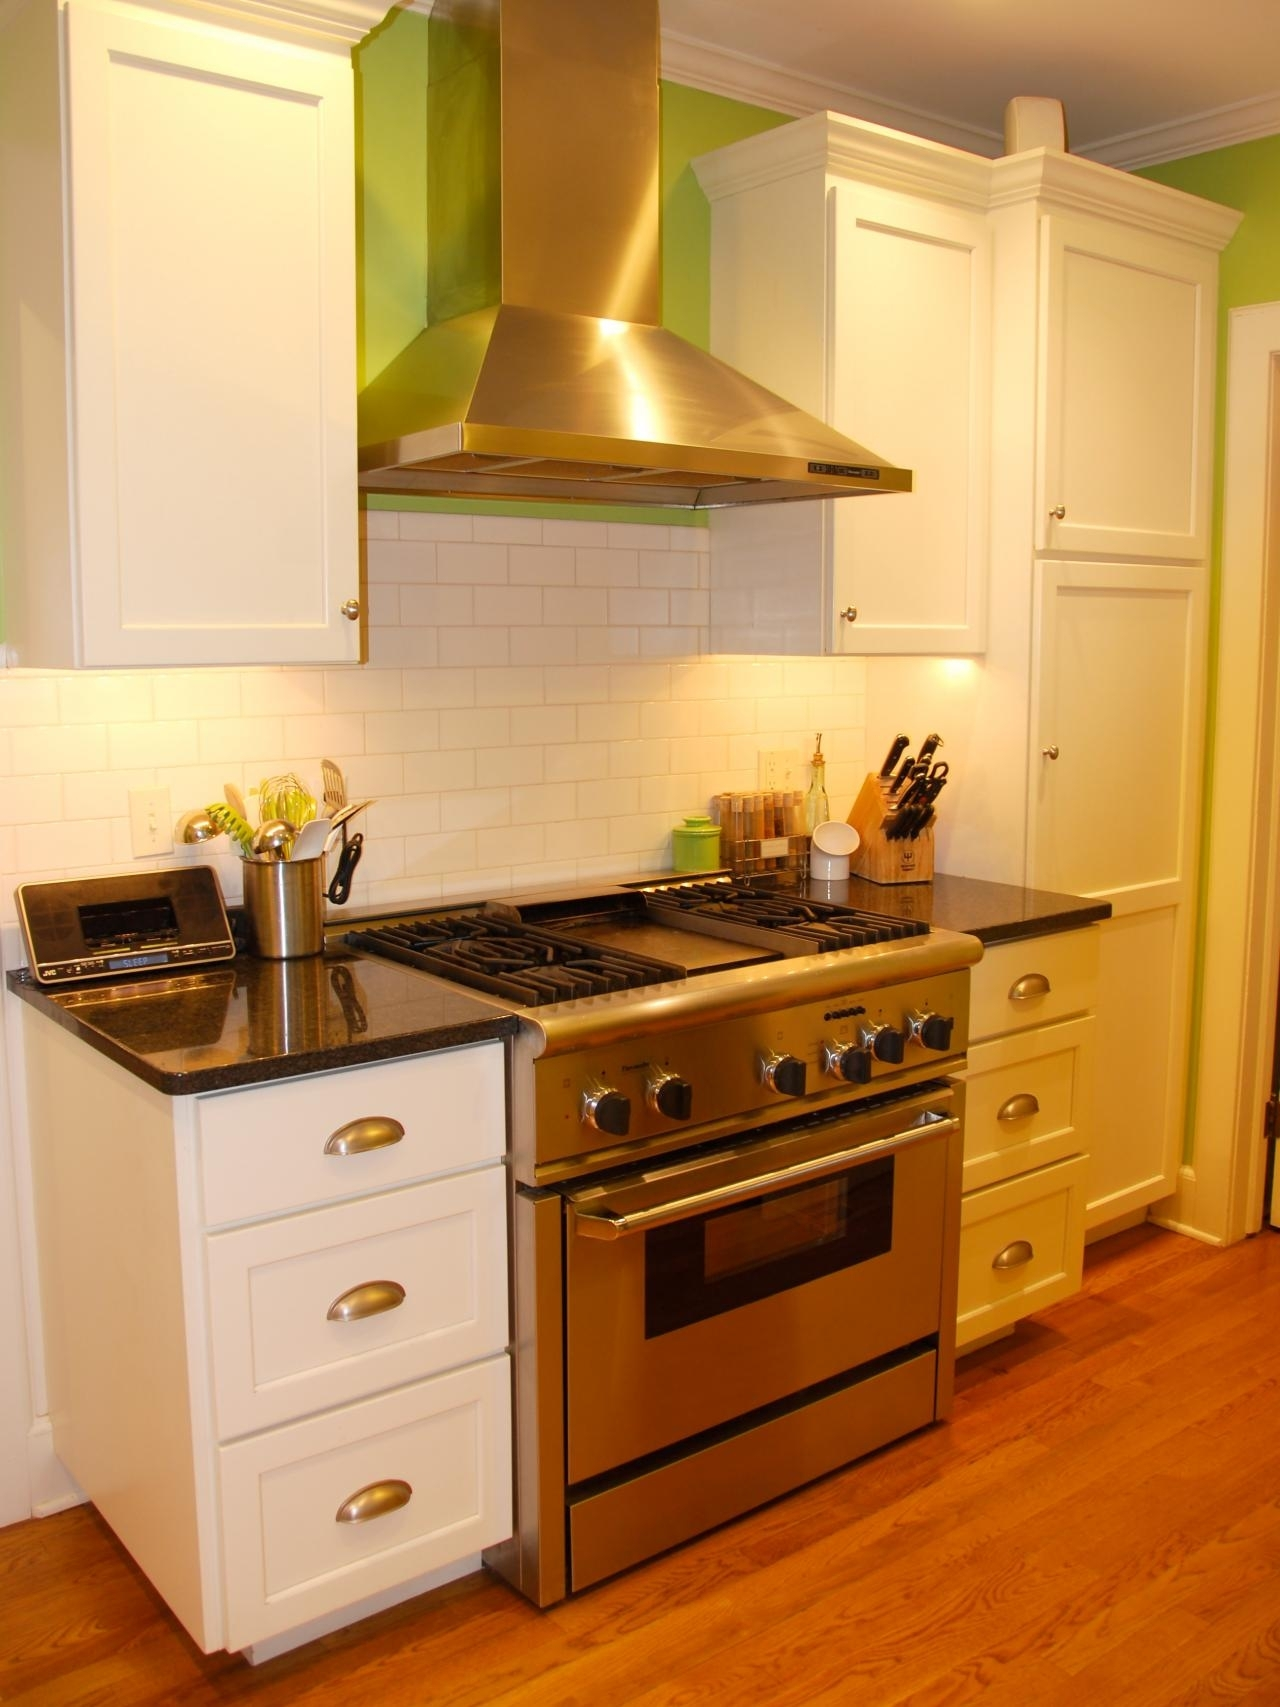 10 Amazing Kitchen Color Ideas For Small Kitchens %name 2021